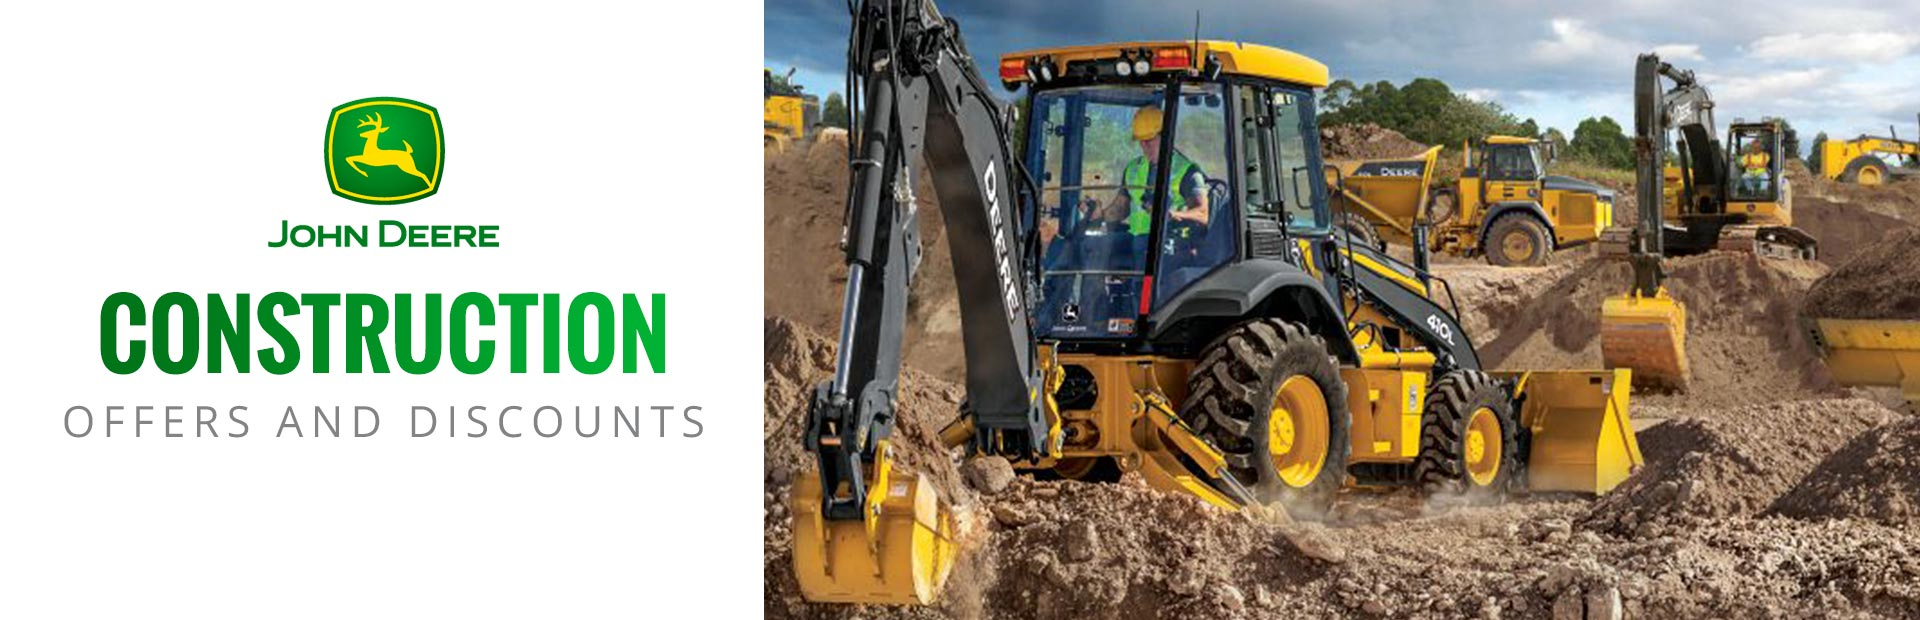 John Deere: Construction Offers and Discounts